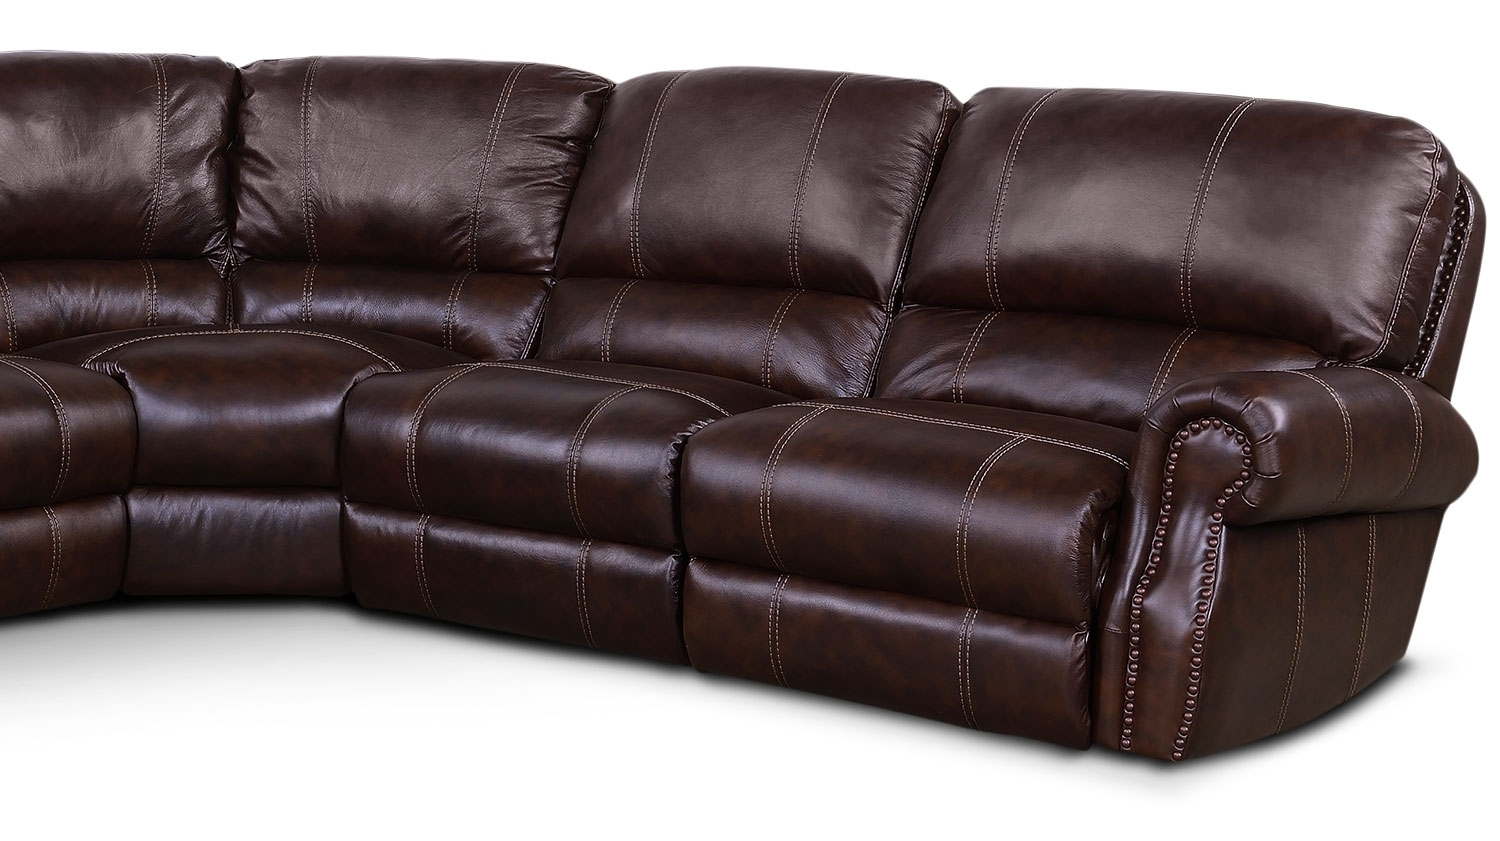 Dartmouth 6 Piece Power Reclining Sectional W/ Left Facing Chaise Intended For Norfolk Chocolate 3 Piece Sectionals With Raf Chaise (Image 10 of 33)